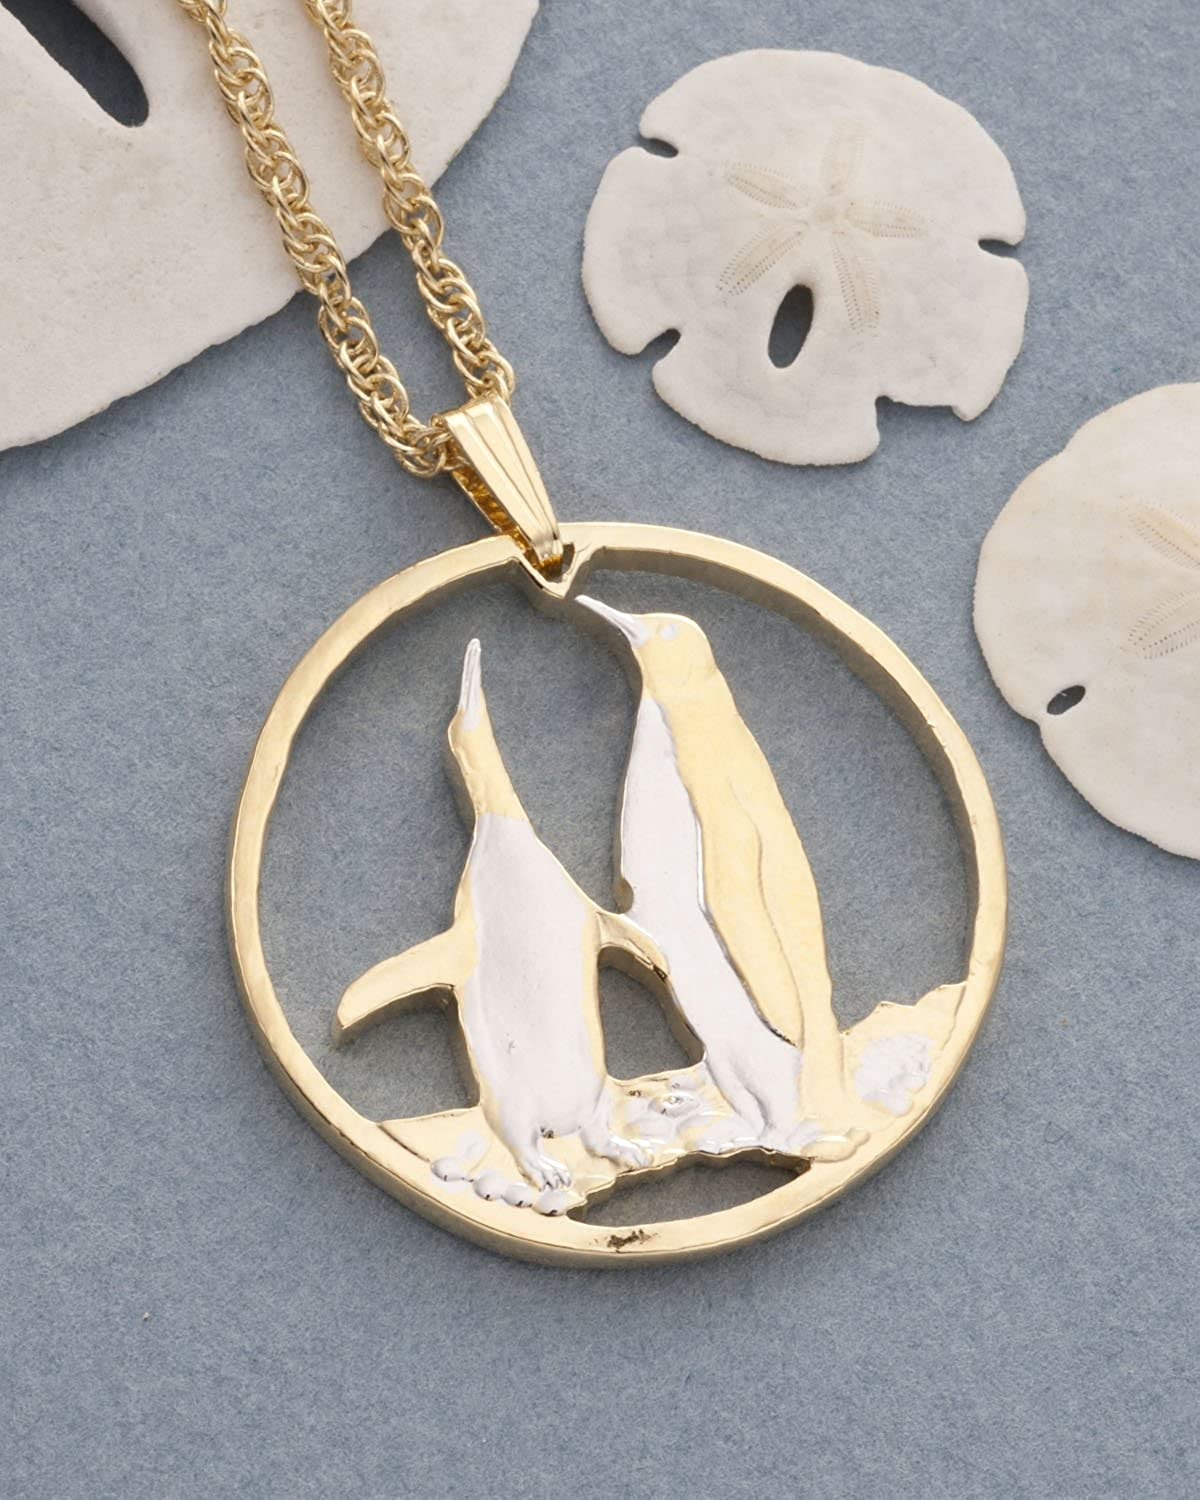 # 388 Falkland Island Coin Hand Cut 1 1//8 in Diameter, Penquins Pendant and Necklace